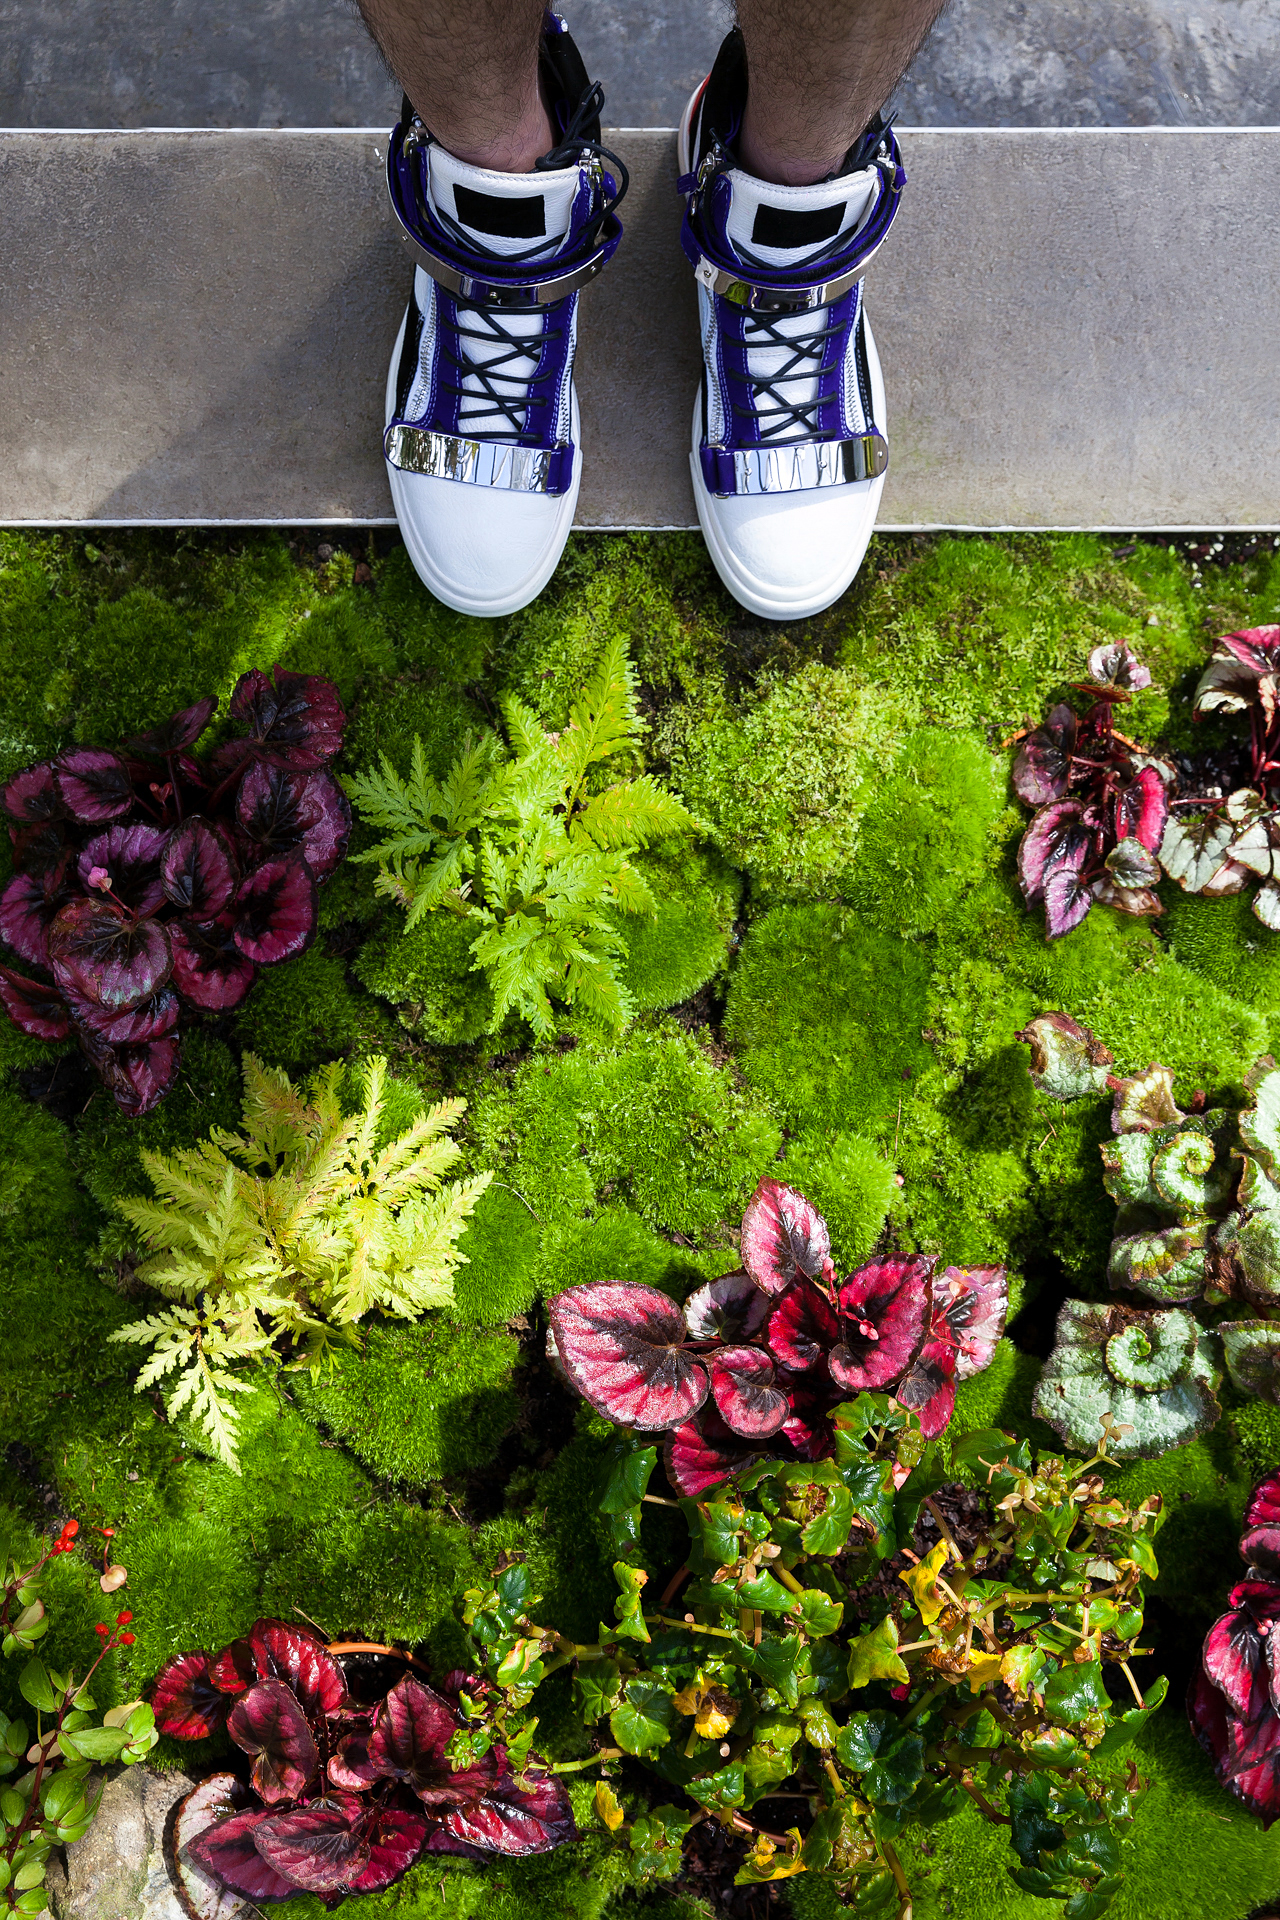 Giuseppe Zanotti White Leather Purple Suede Double Metal Strap Sneakers at Gardens by the Bay Singapore